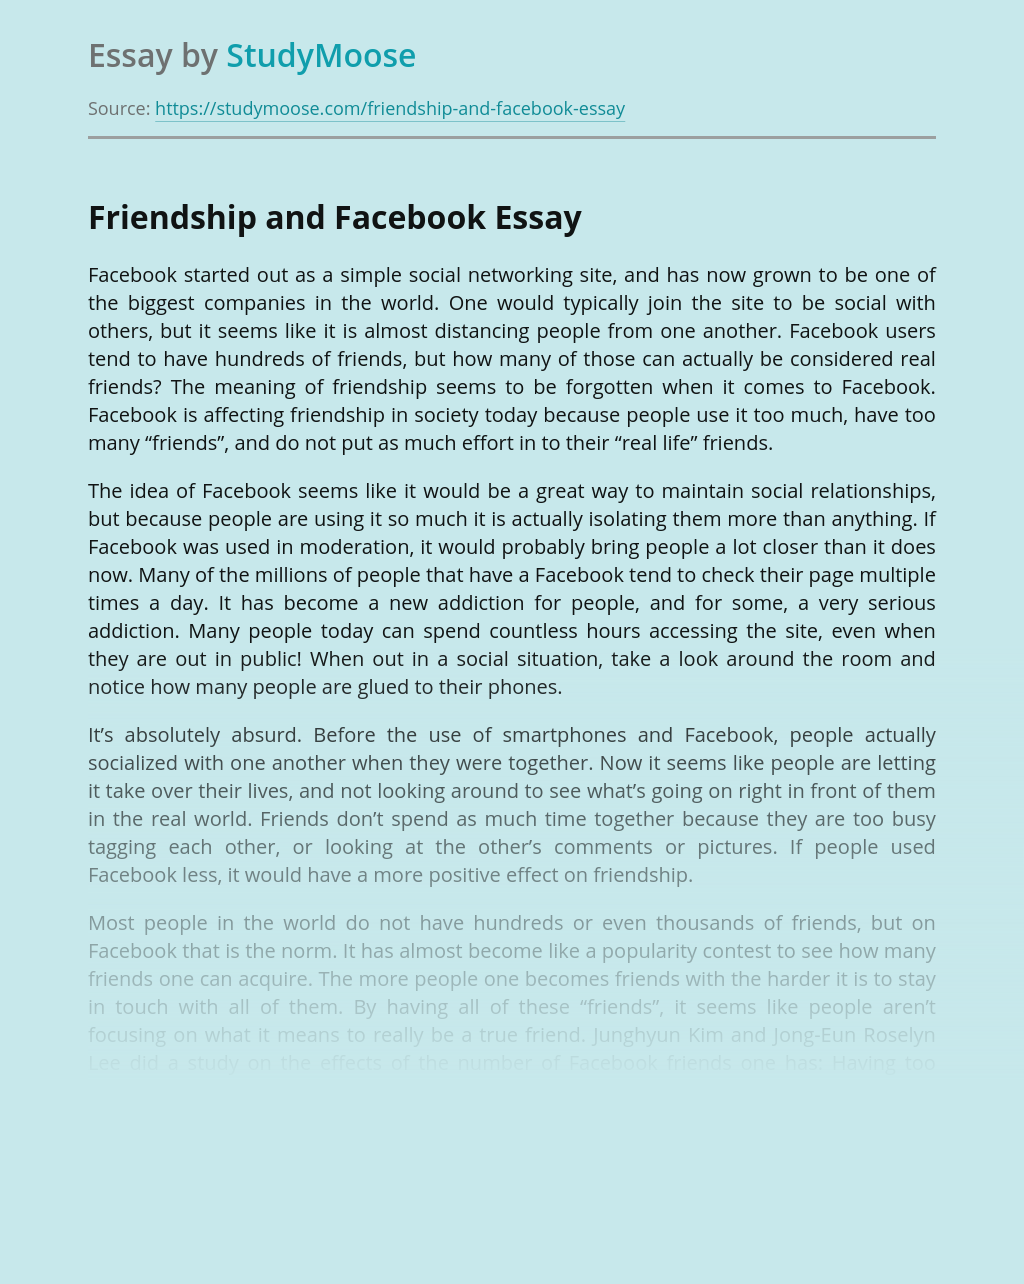 Friendship and Facebook